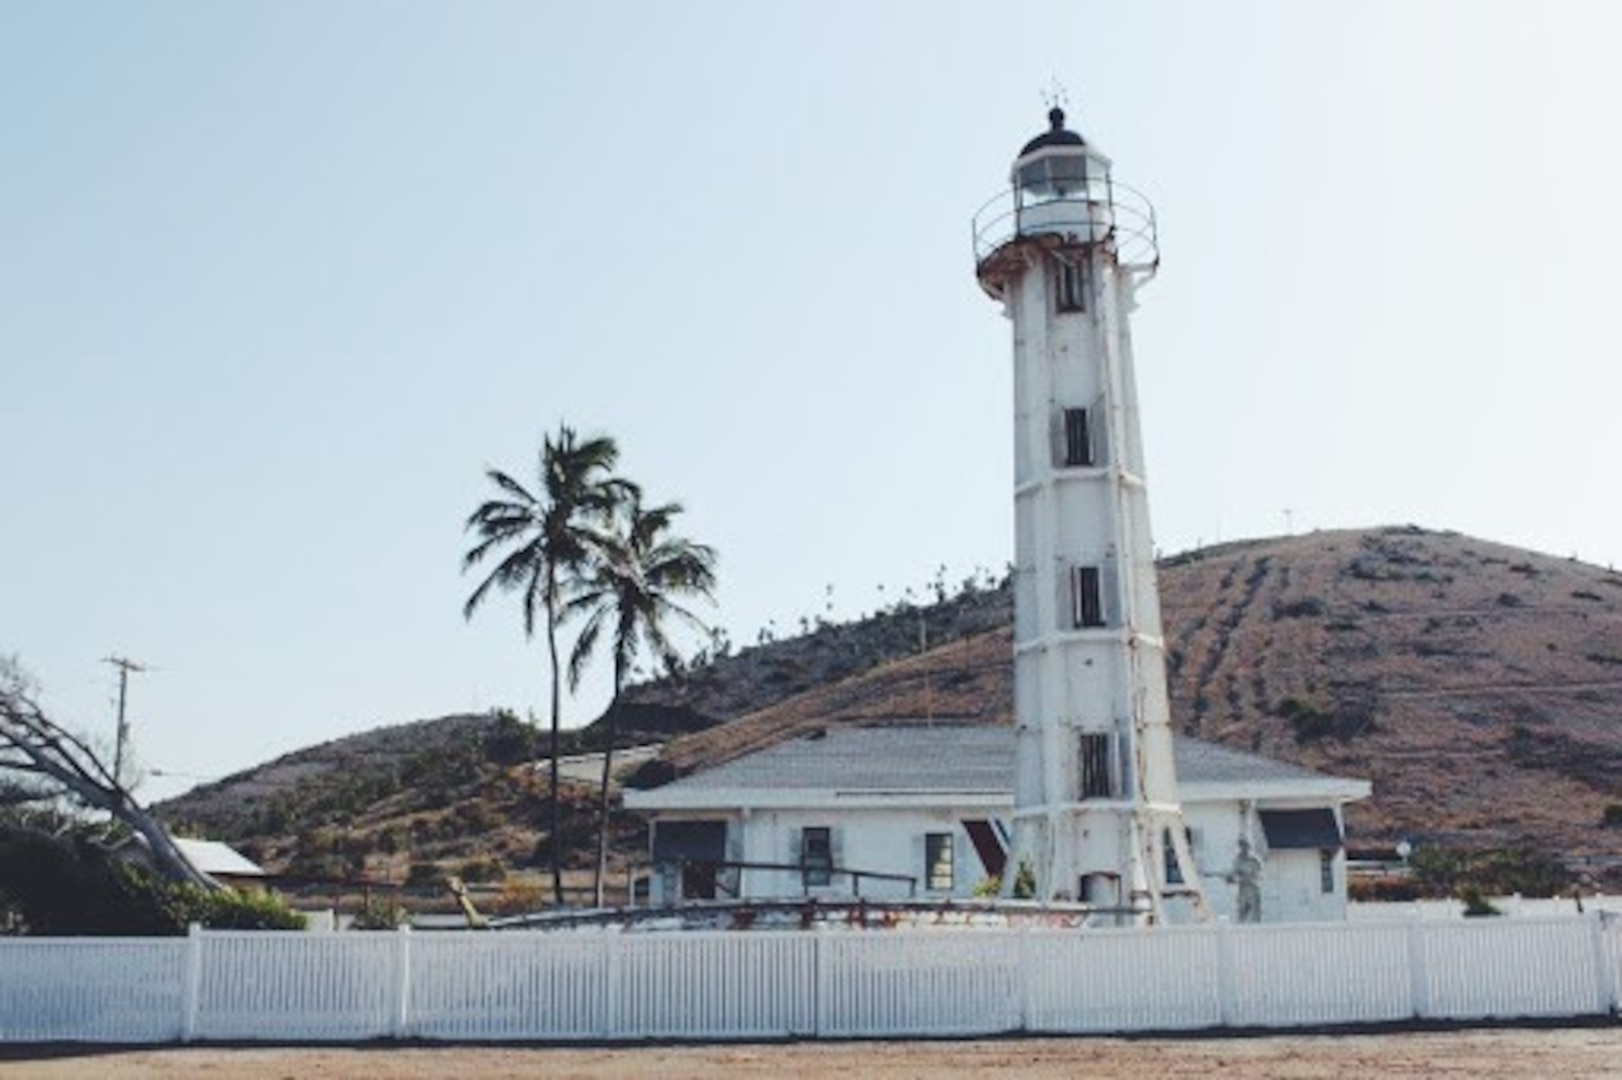 A 2016 color photo of Guantanamo Lighthouse showing corrosion and deterioration of the upper iron works. (Photo courtesy Alexis K. Thomas)